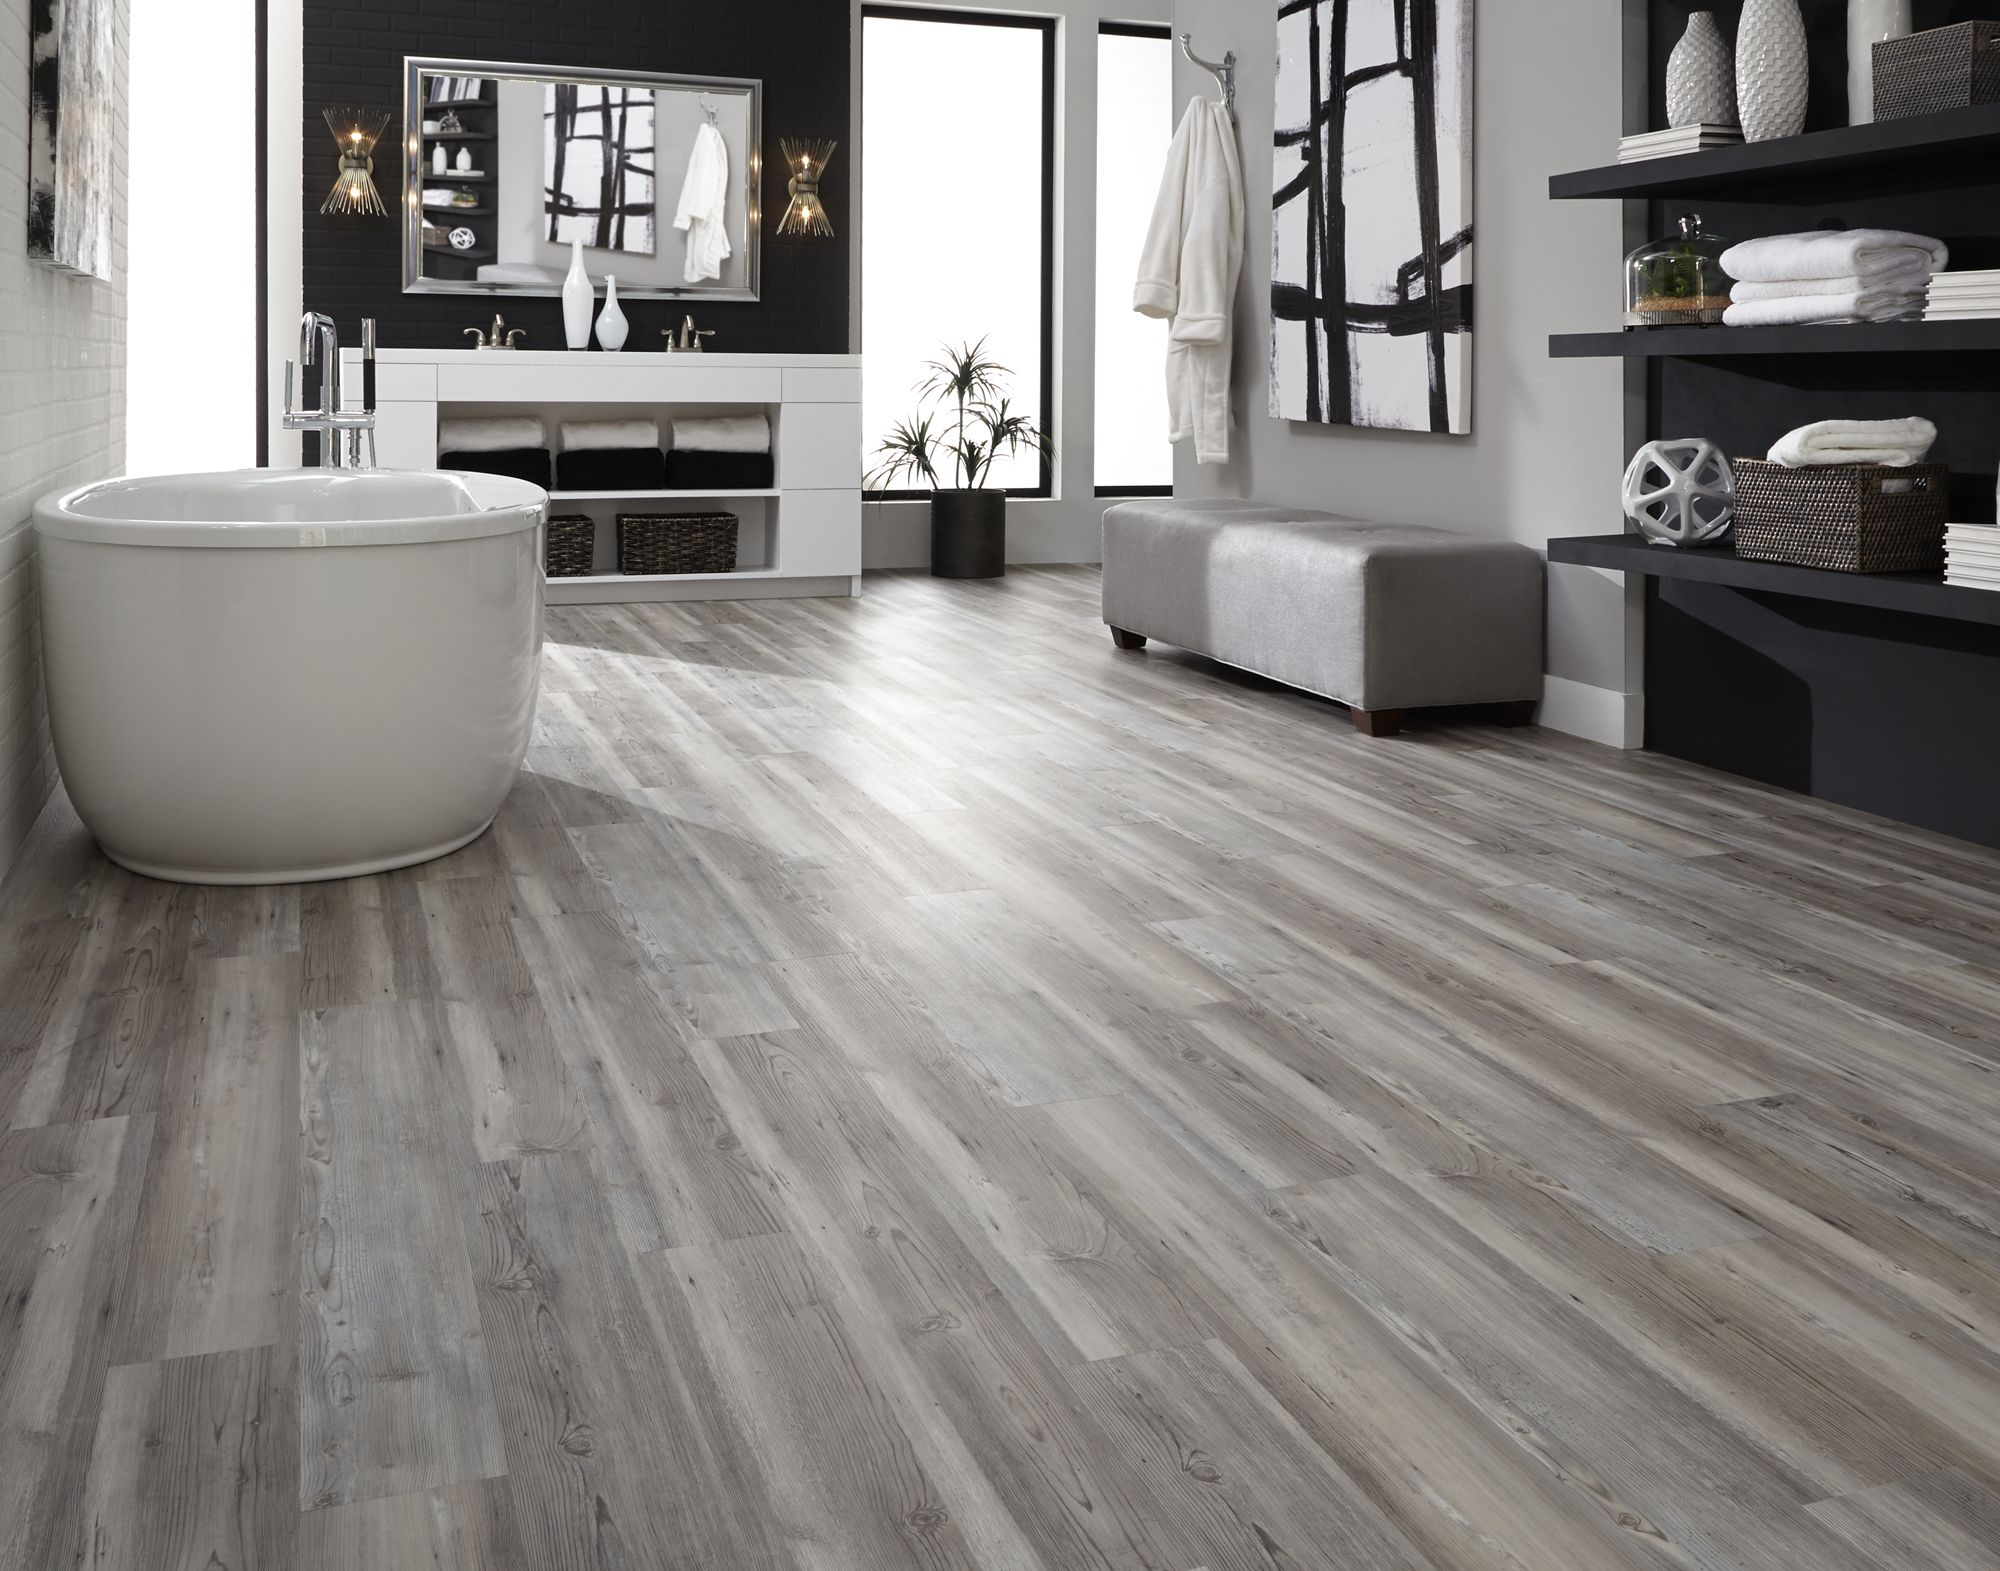 bathroom laminate flooring waterproof 20 step waterproof laminate flooring at cost diy 16035